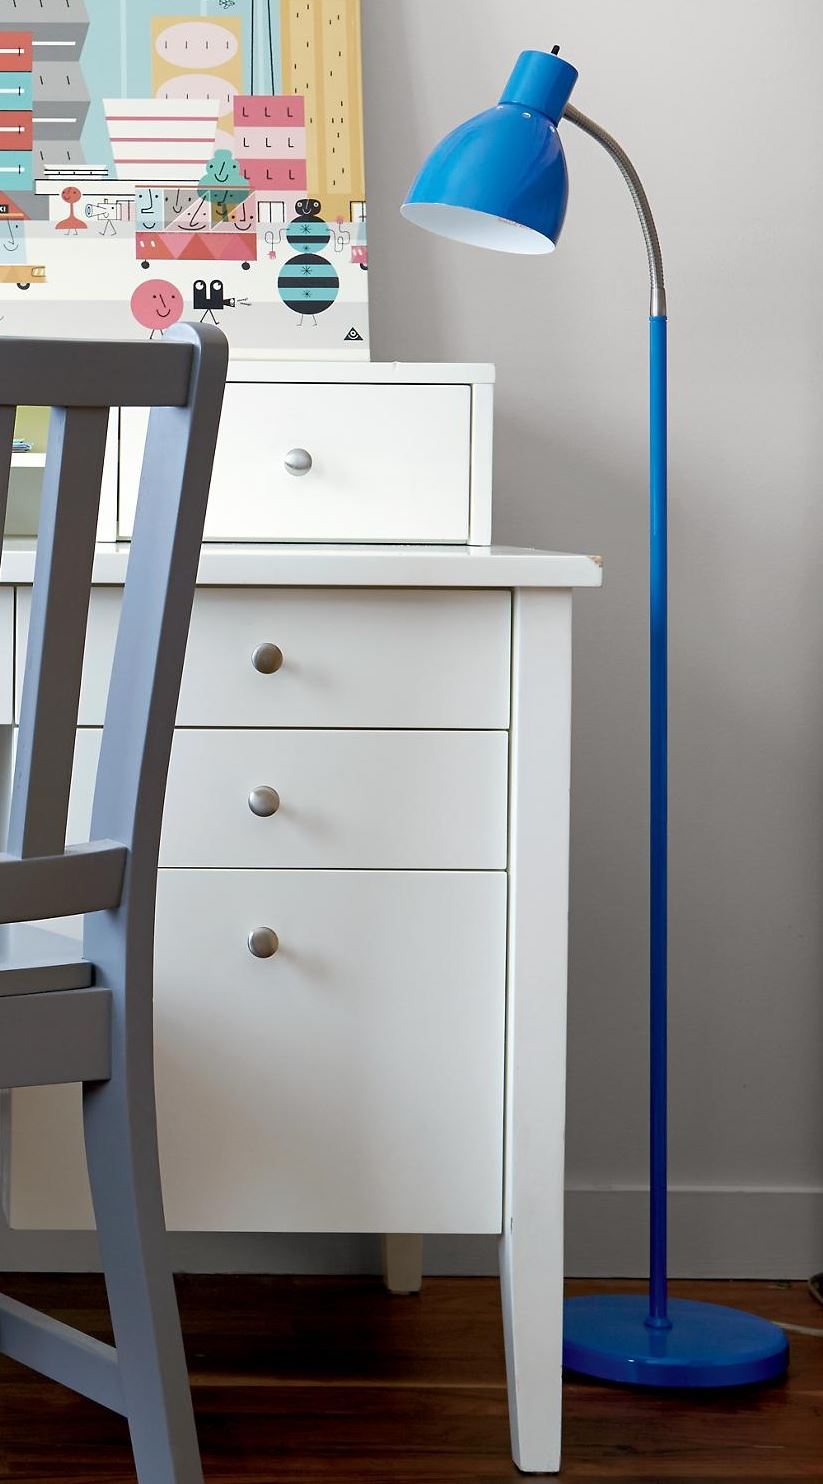 Adjustable floor lamp from The Land of Nod